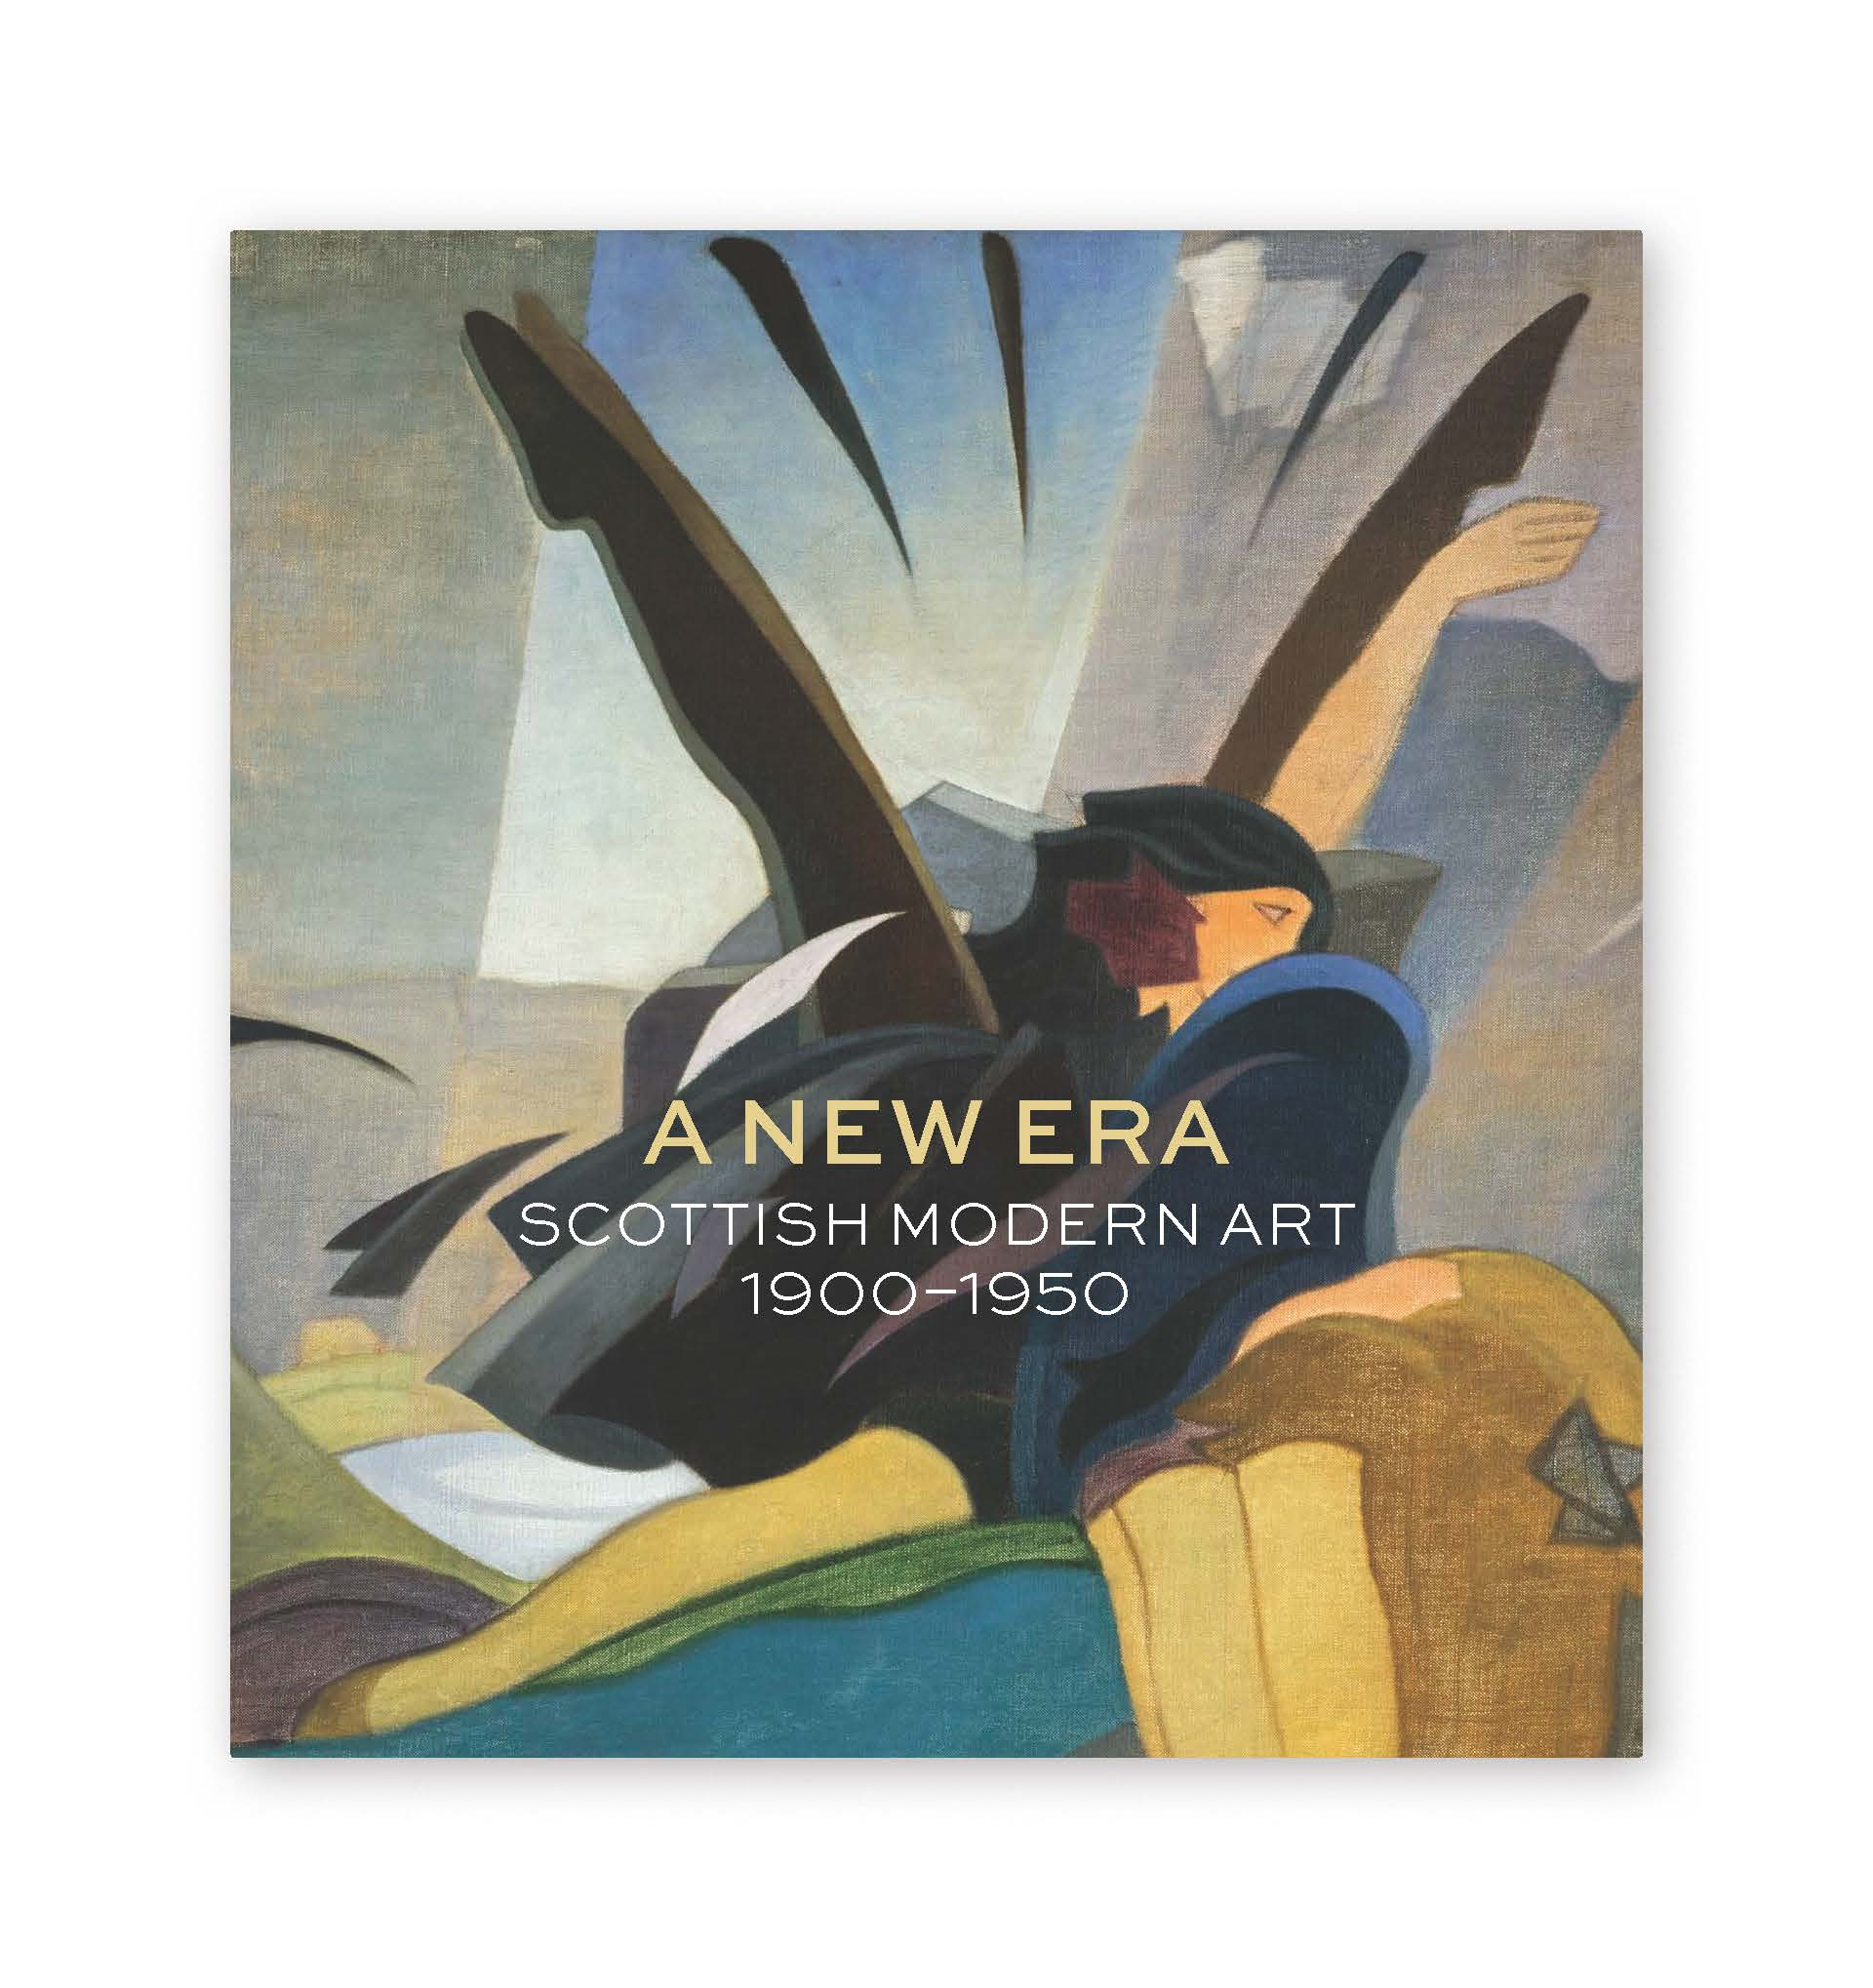 A New Era: Scottish Modern Art 1900-1950